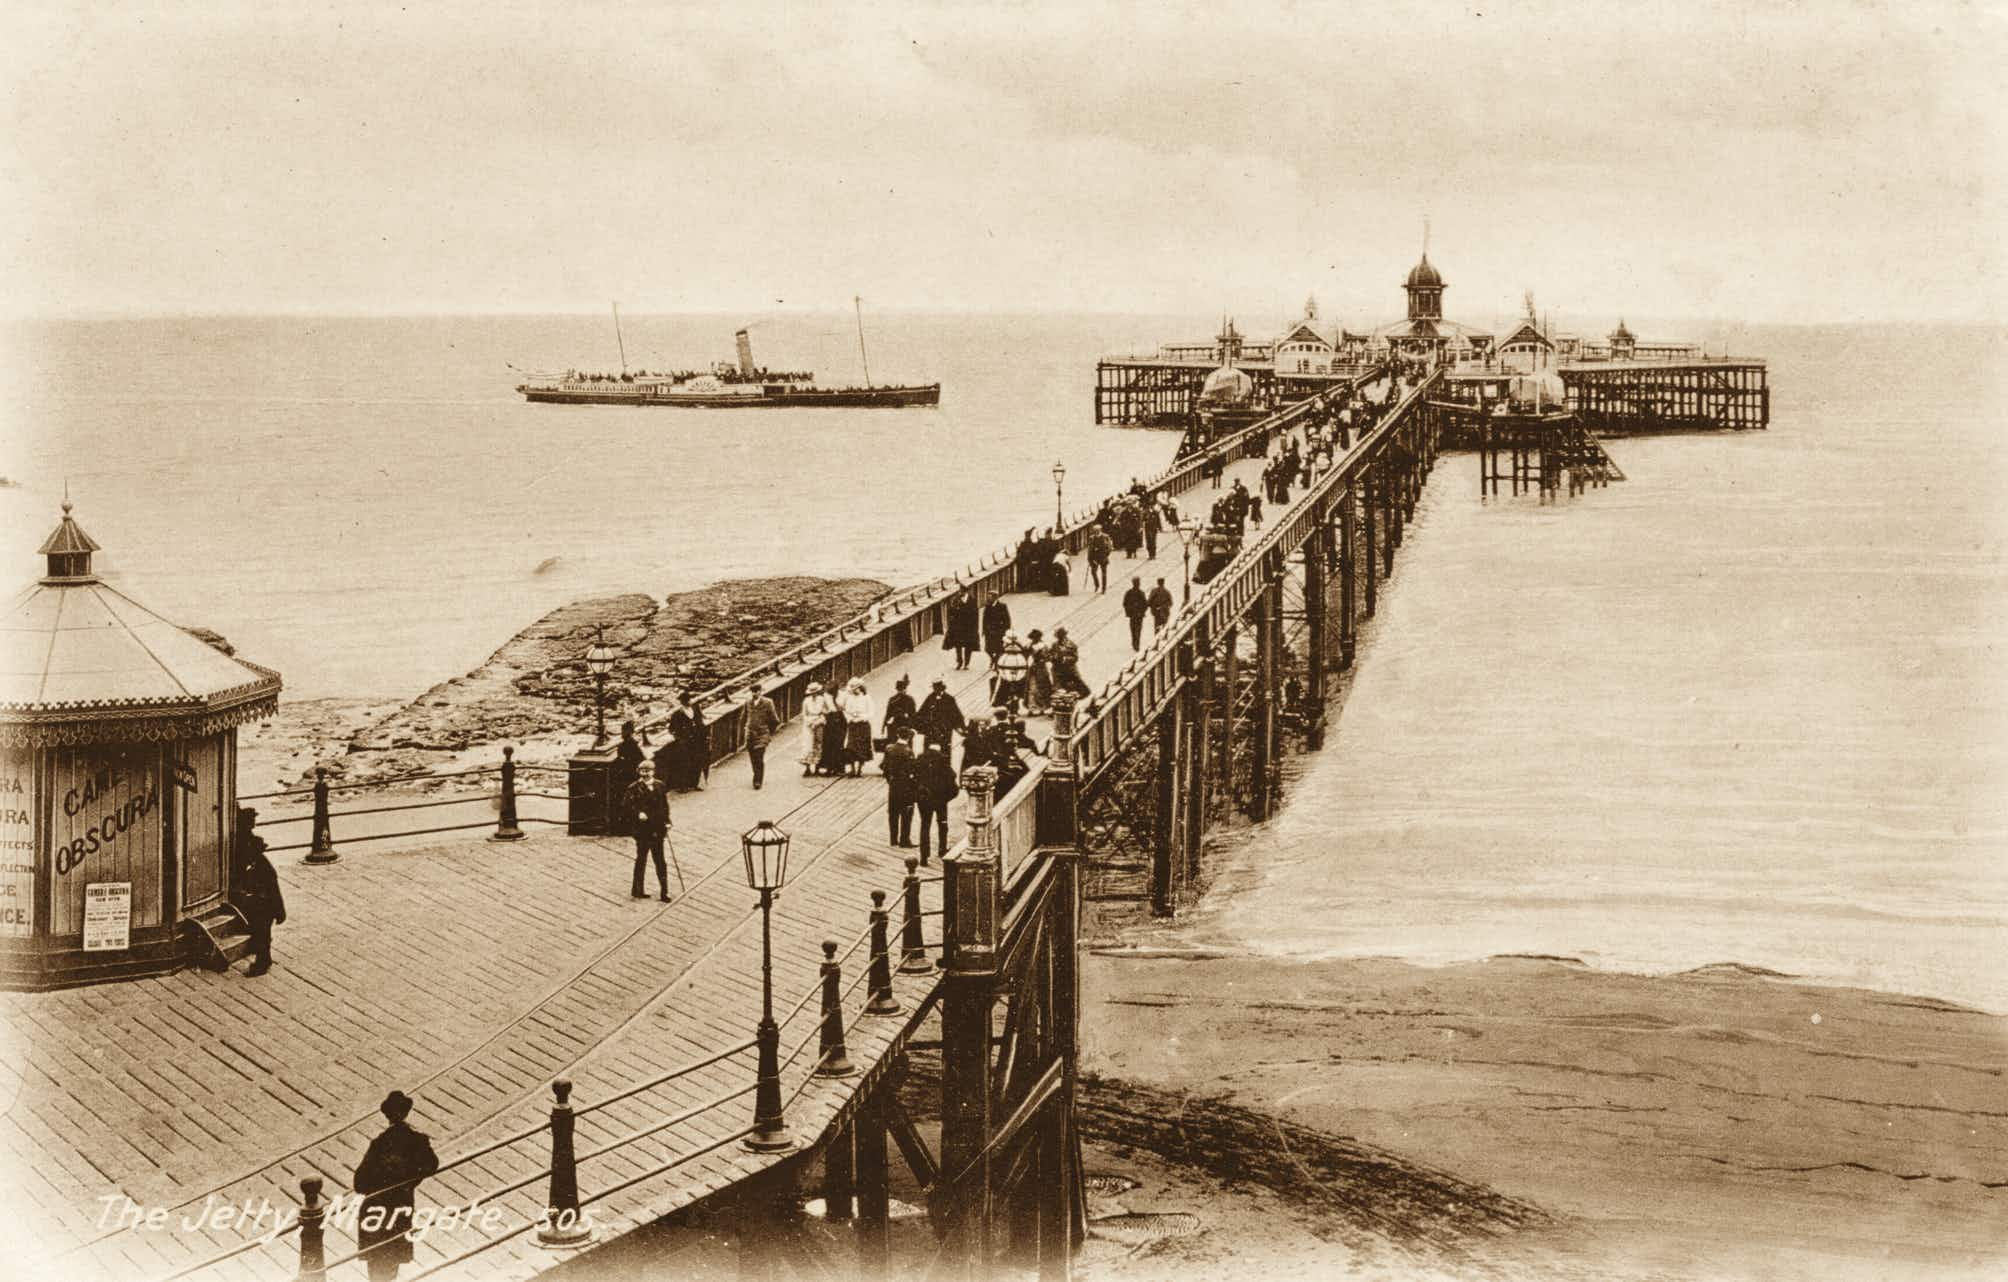 Relive the golden age of the British seaside resort with this stunning postcard collection